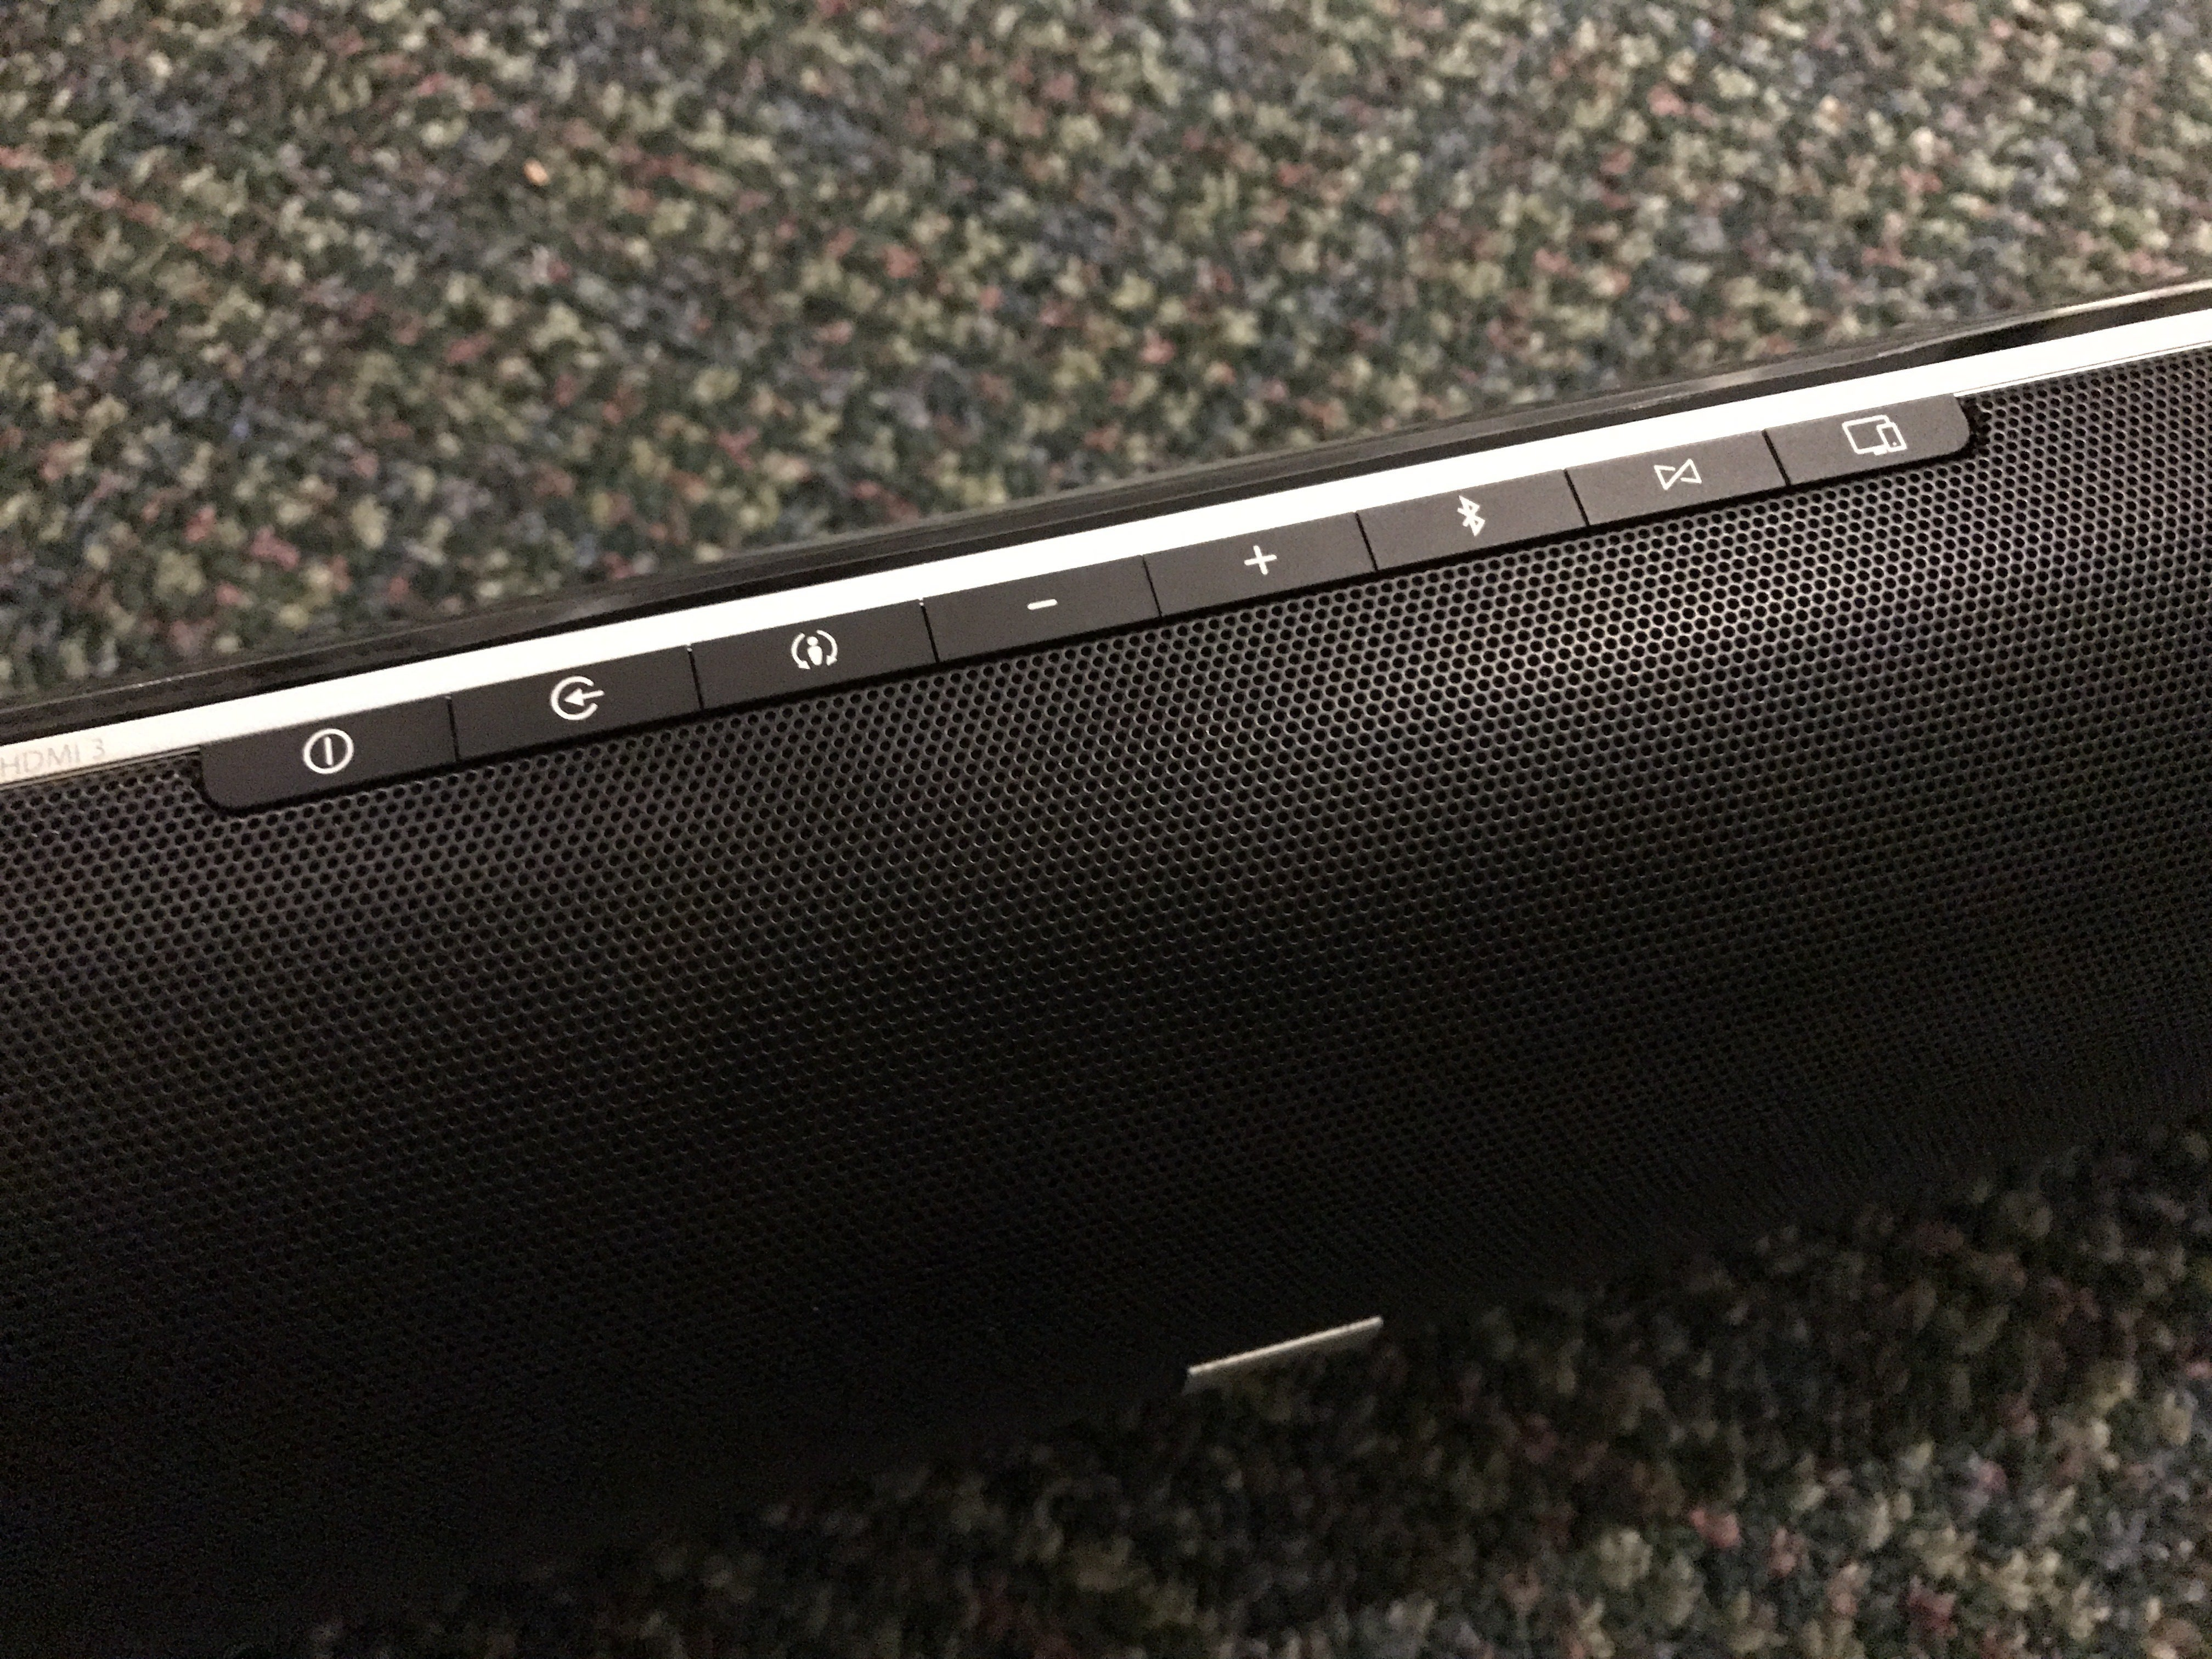 Jbl Cinema Sb 450 Soundbar Review This Speaker Is Made For Movie Amplifier Wiring Kit Guide Sb450 Top Controls